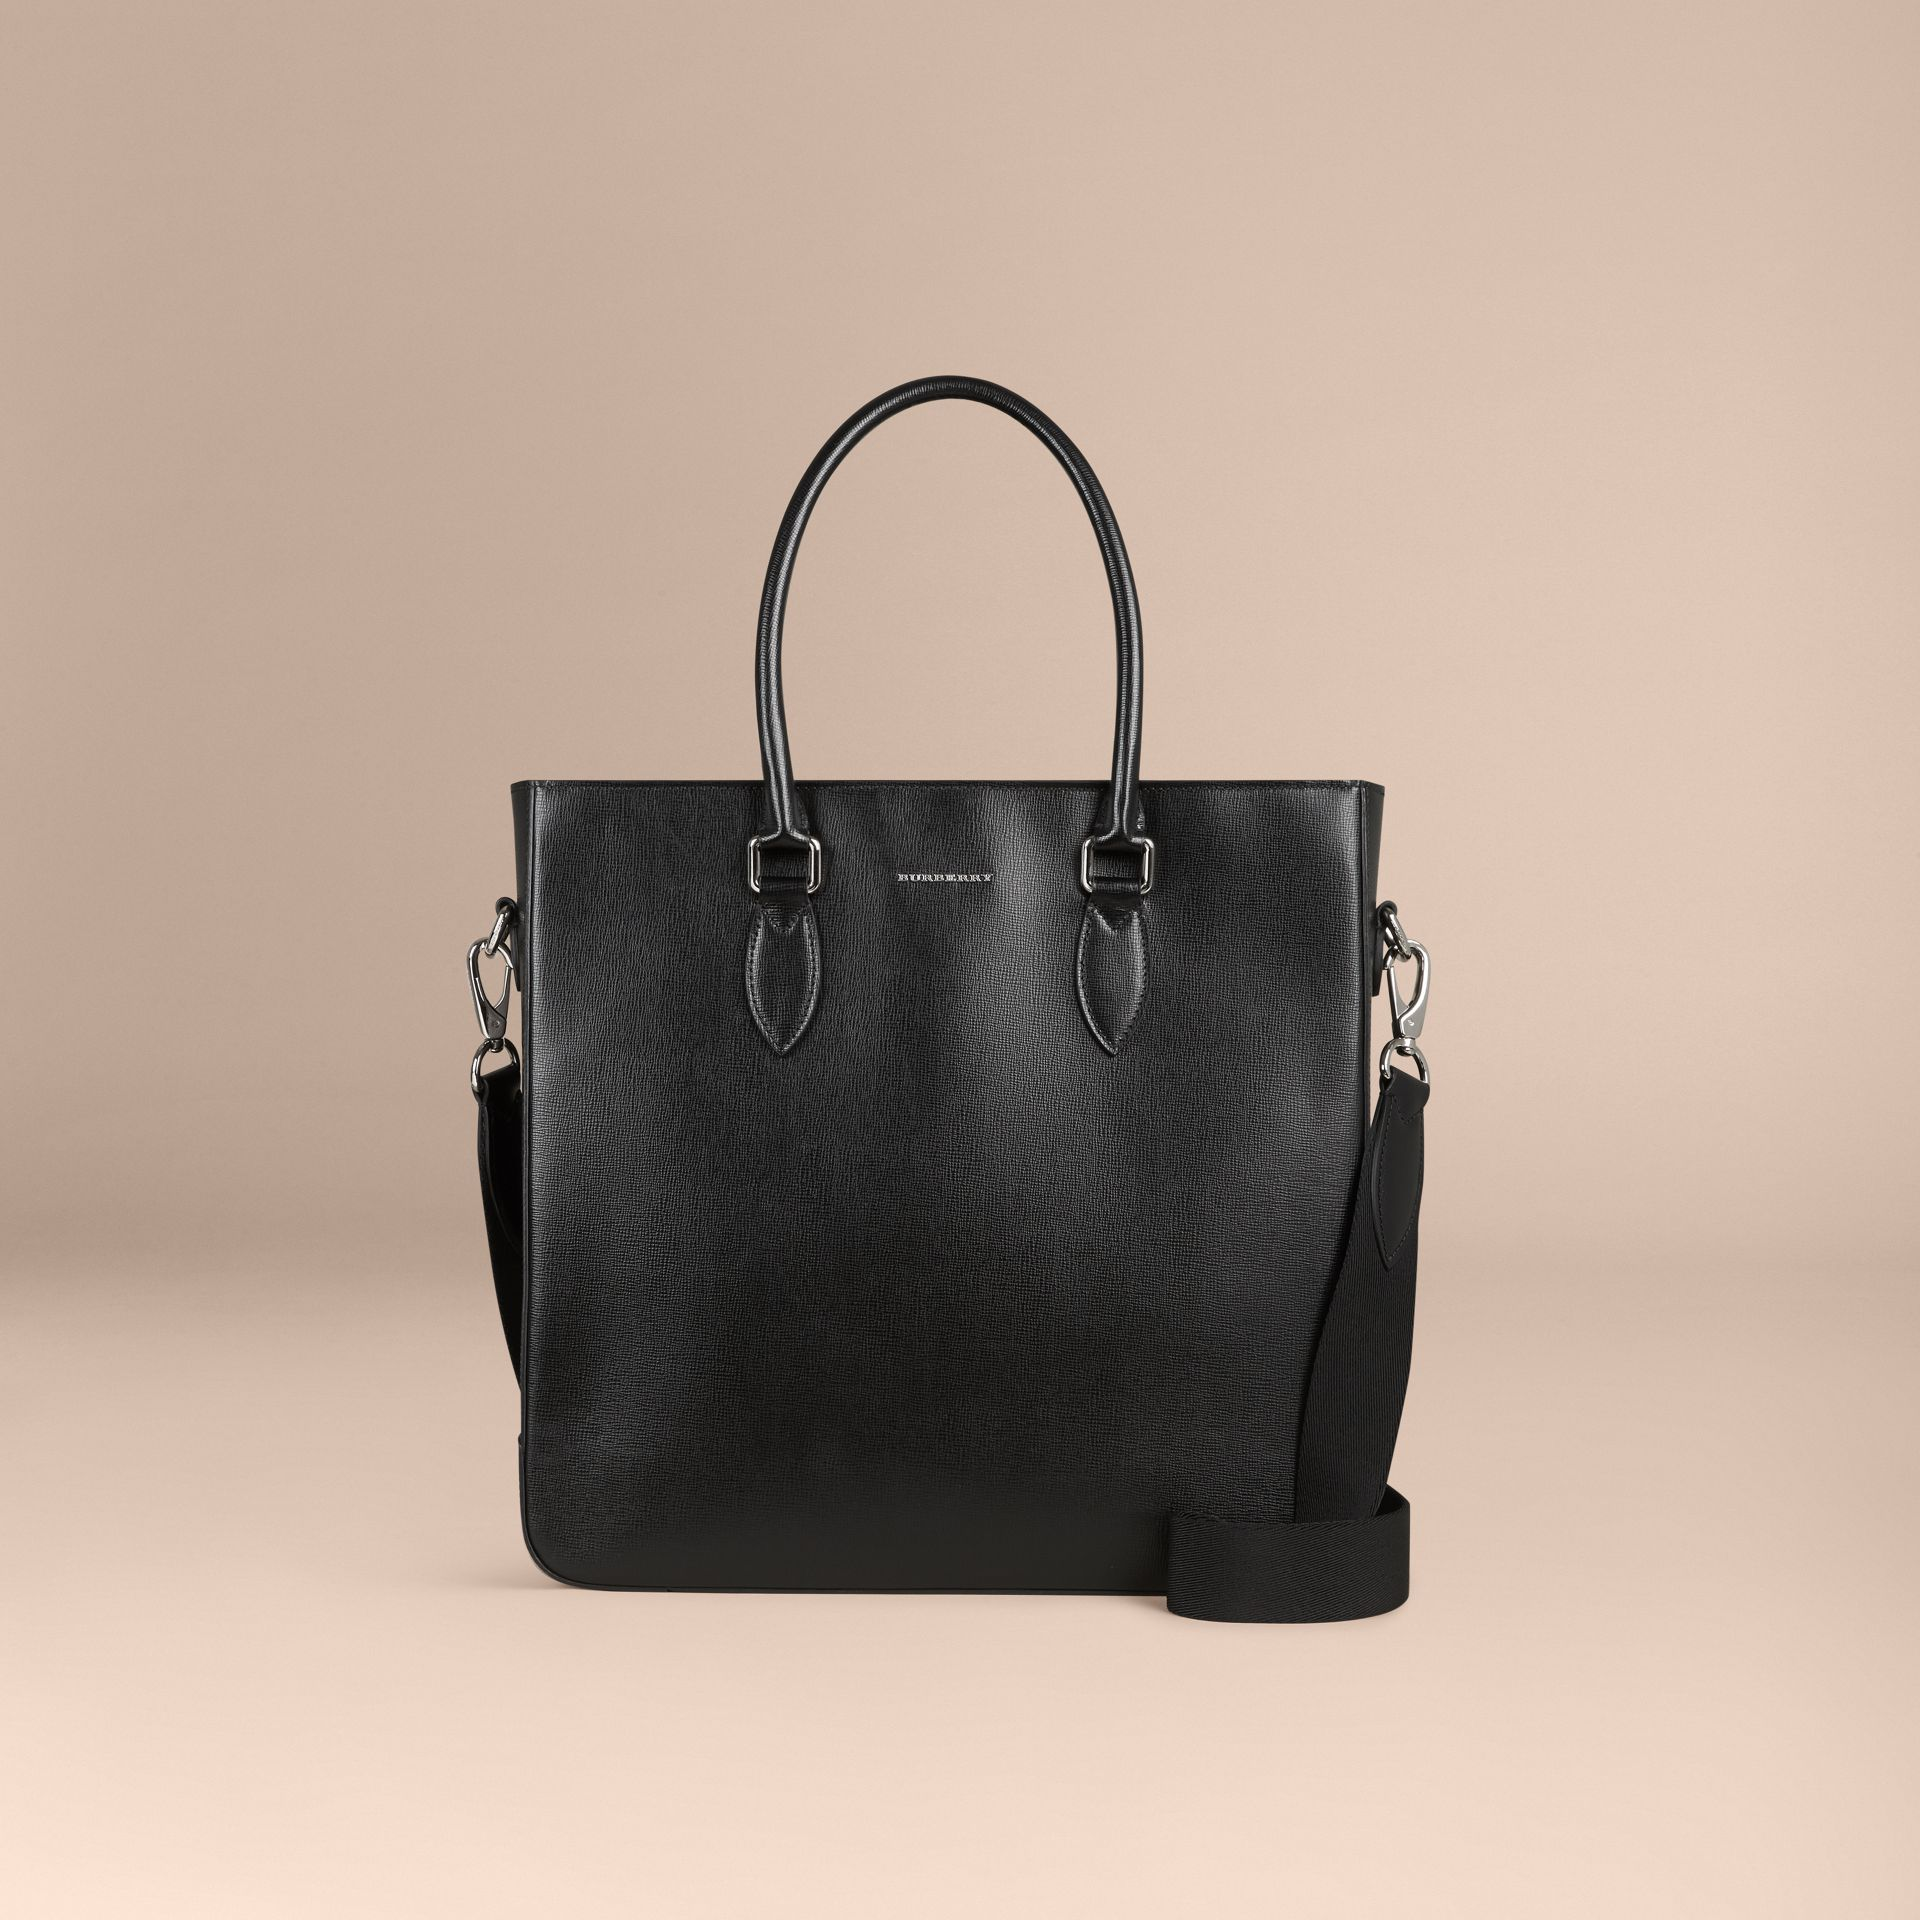 Black London Leather Tote Bag Black - gallery image 8